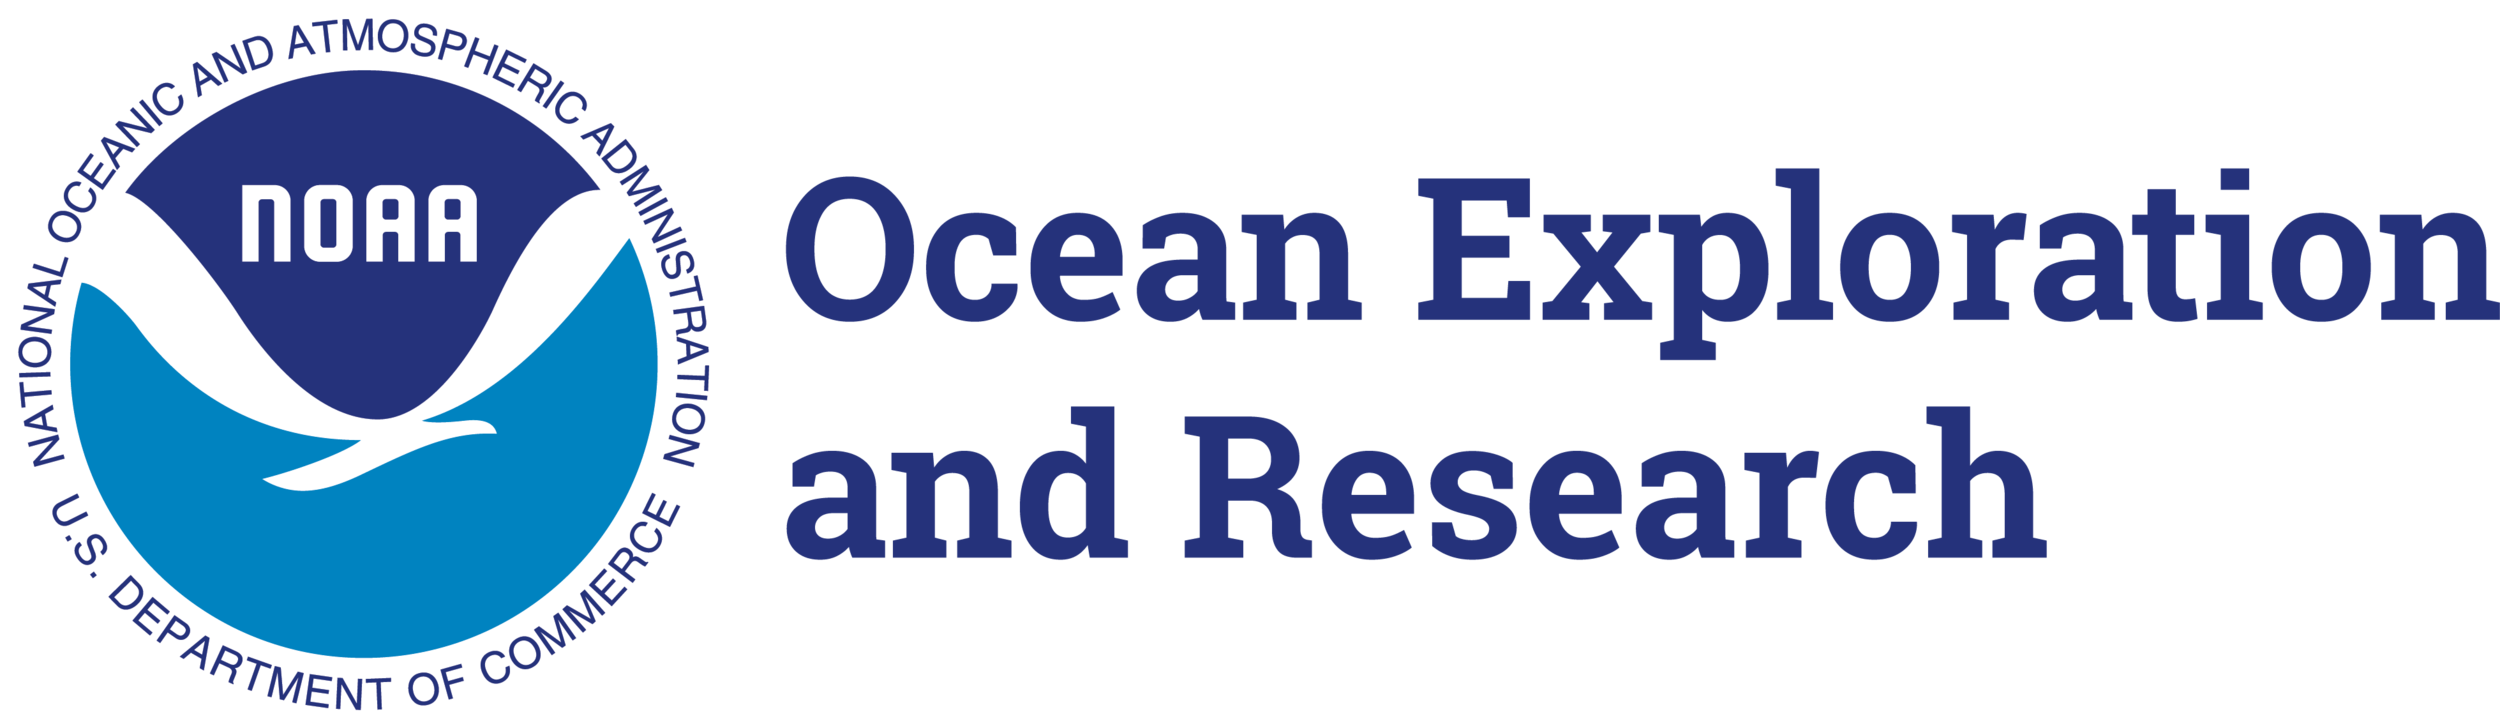 NOAA Office of Ocean Exploration & Research